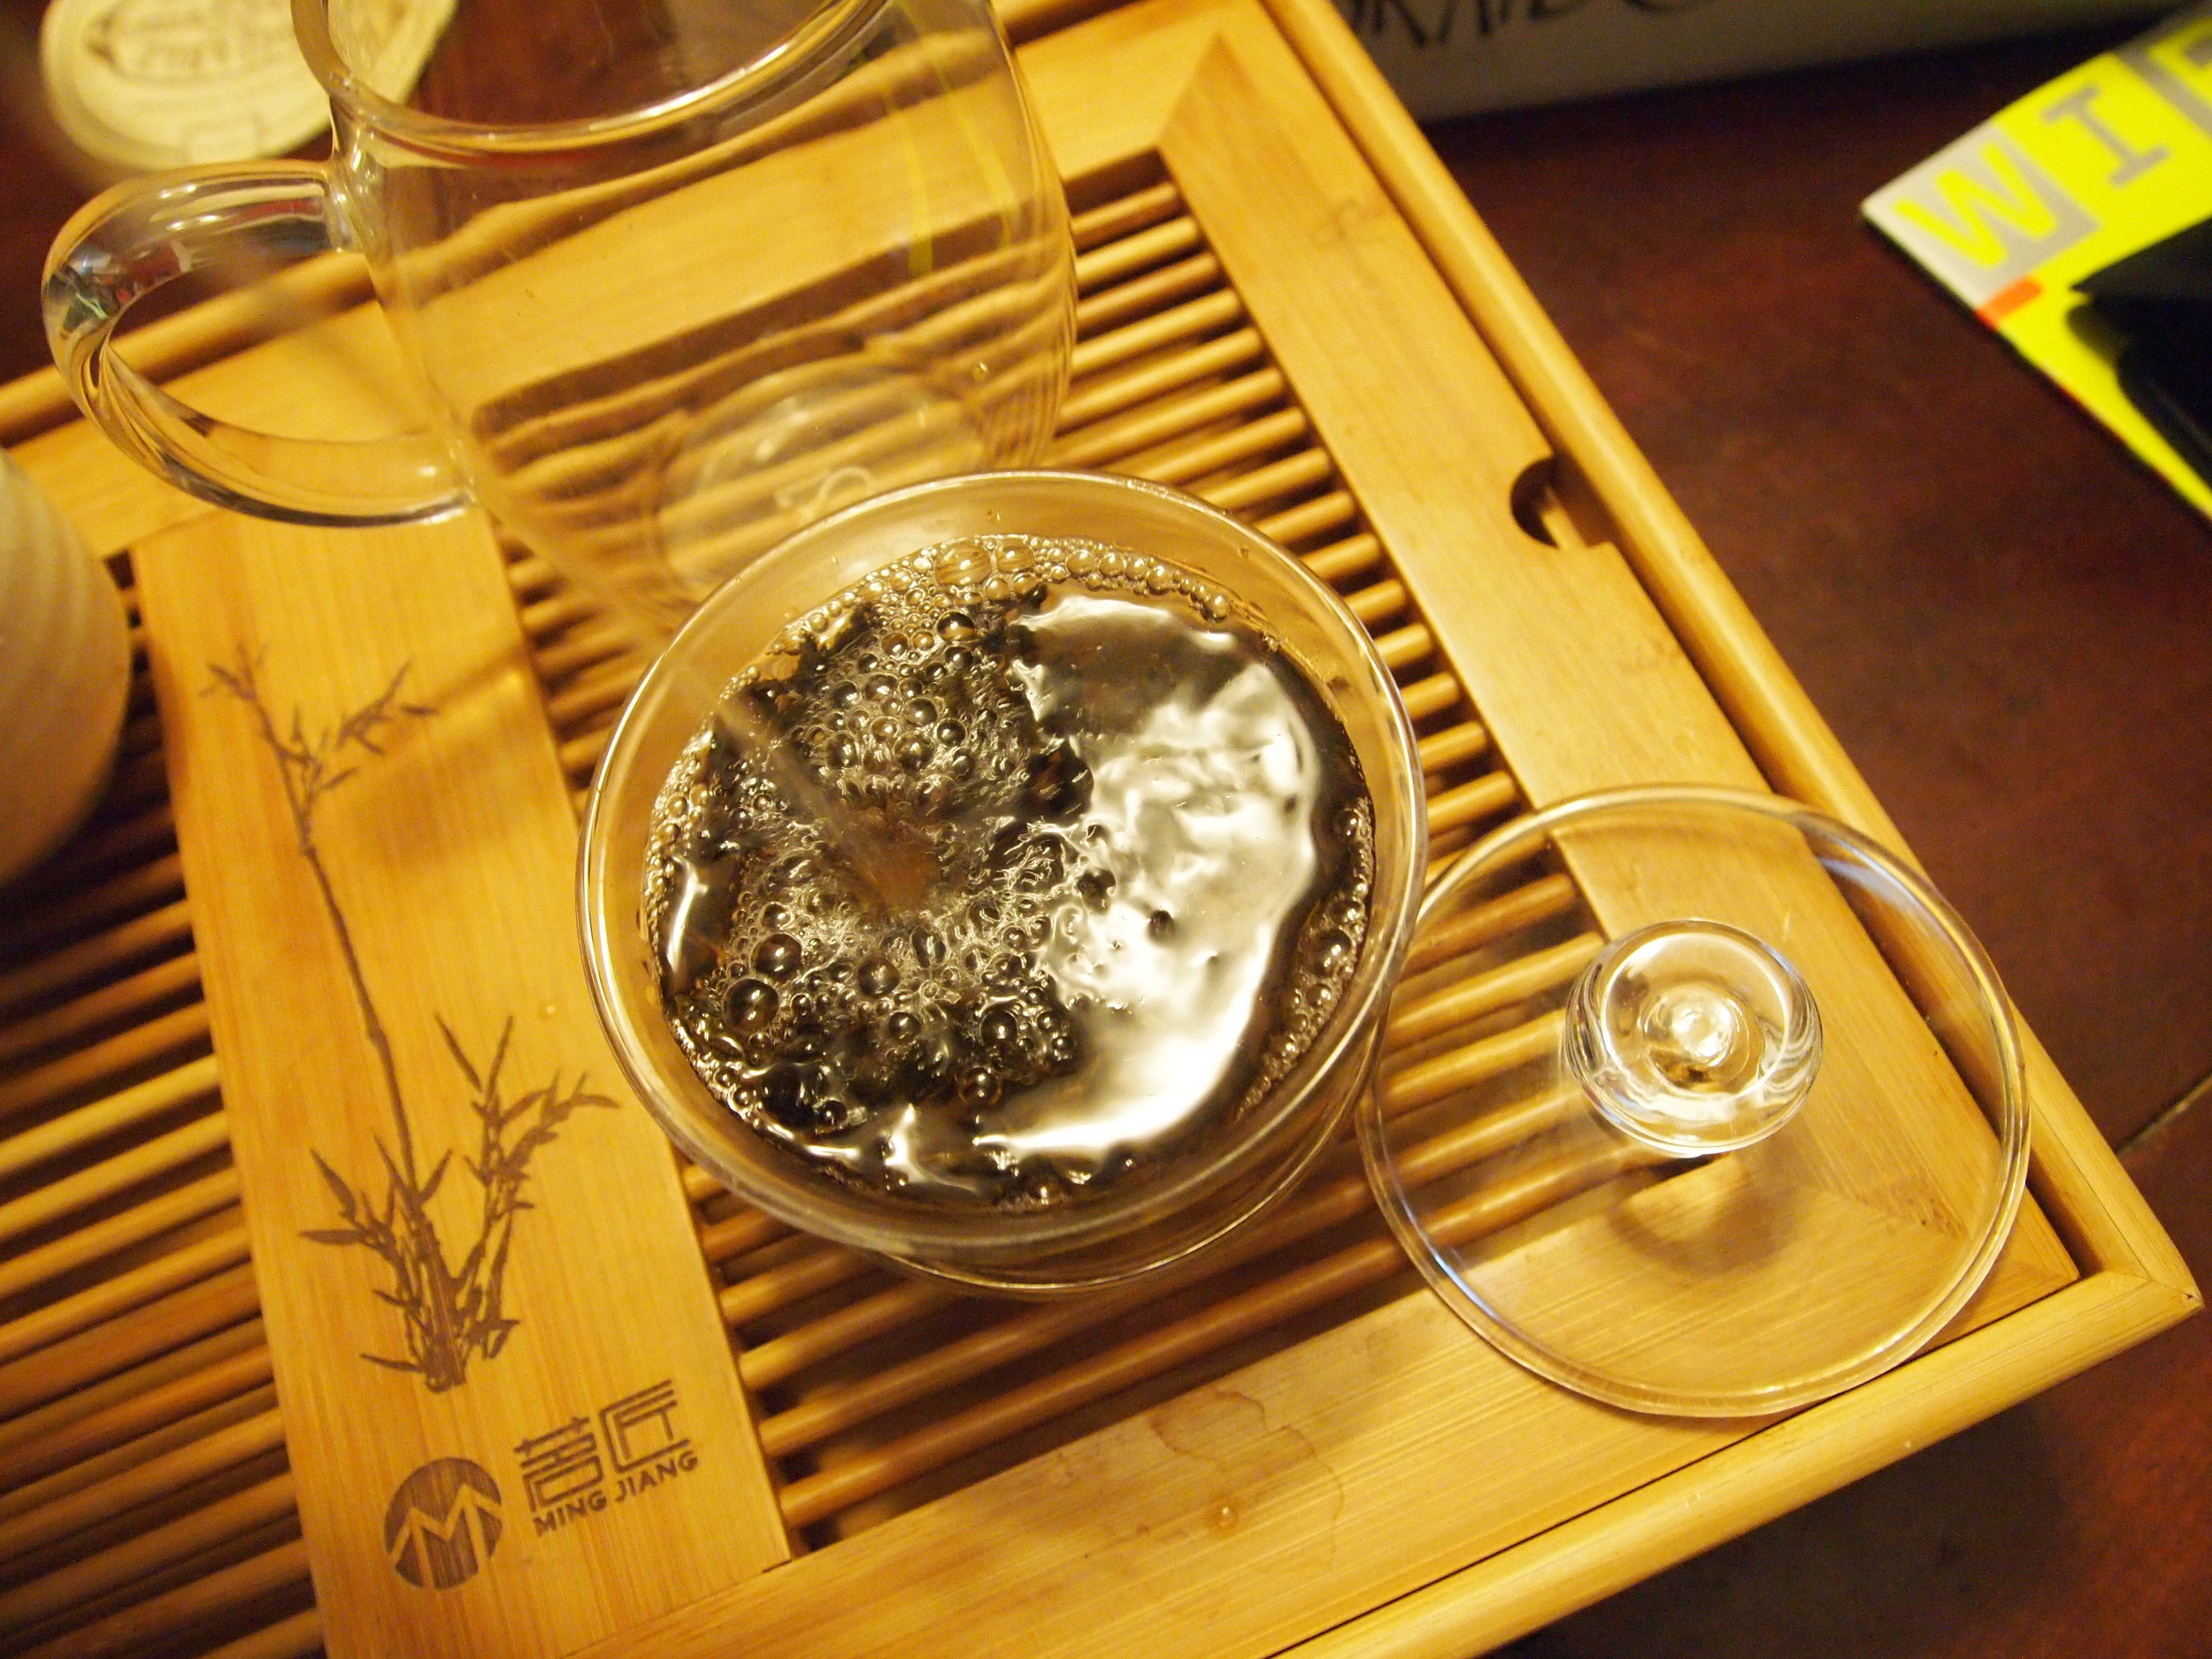 For water temperature, I chose 190F. This is a dark, robust oolong that can take some punishment. For leaf ratio, remember that it is  an experiment , so you'll learn each time what the ideal amount is.